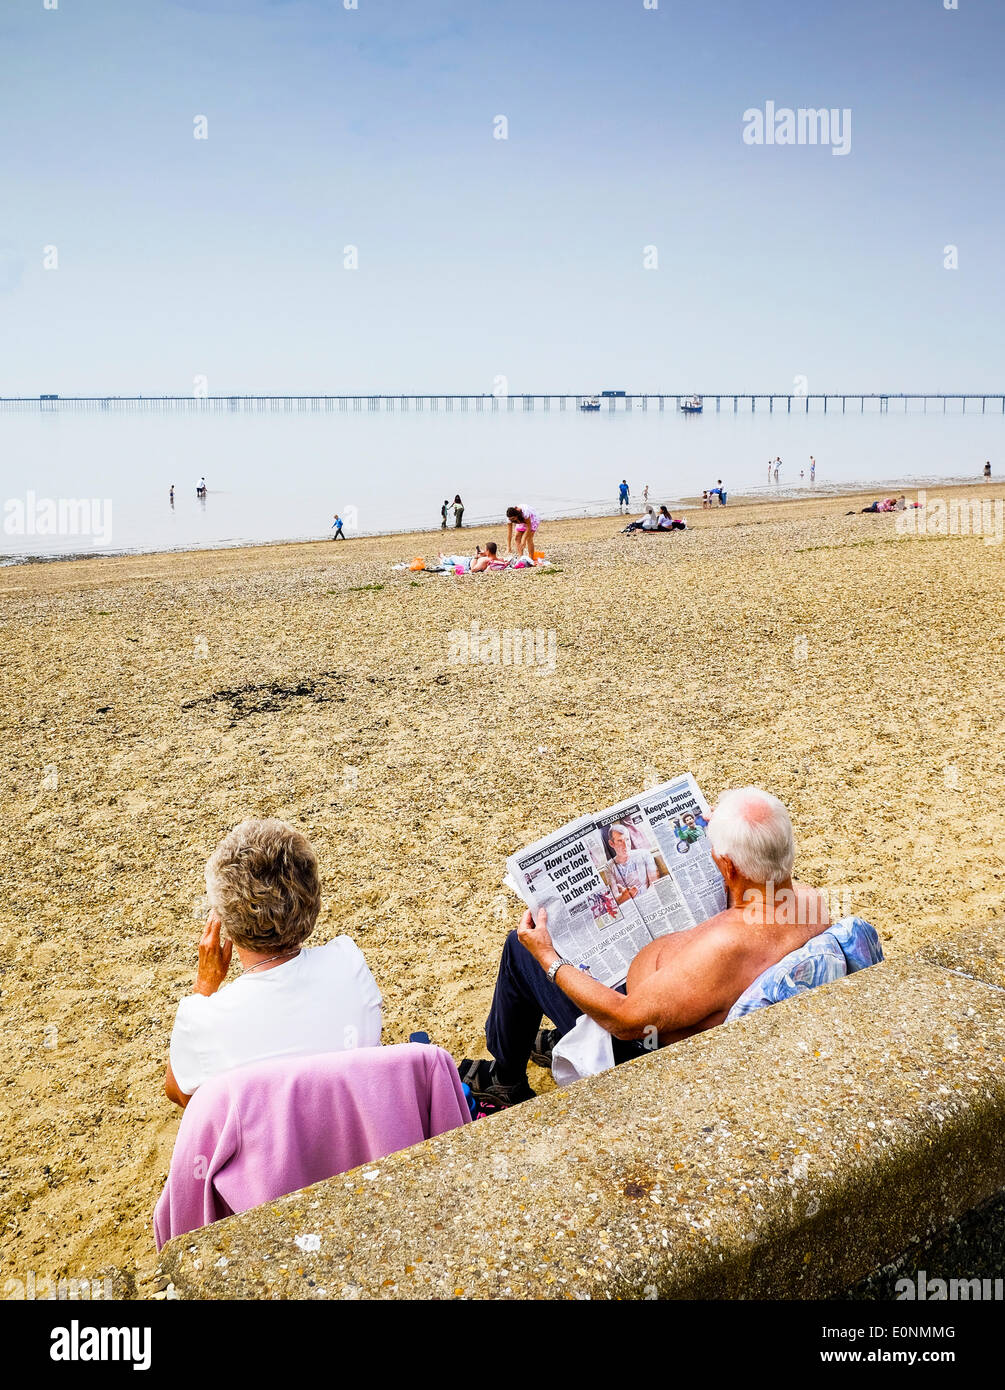 Southend on Sea, Essex, UK. 17th May, 2014.  People settle down in the morning on the Jubilee Beach at Southend on Sea as the temperature starts to build into what will prove to be the hottest day of the year so far.  Photographer: Gordon Scammell/Alamy Live News - Stock Image